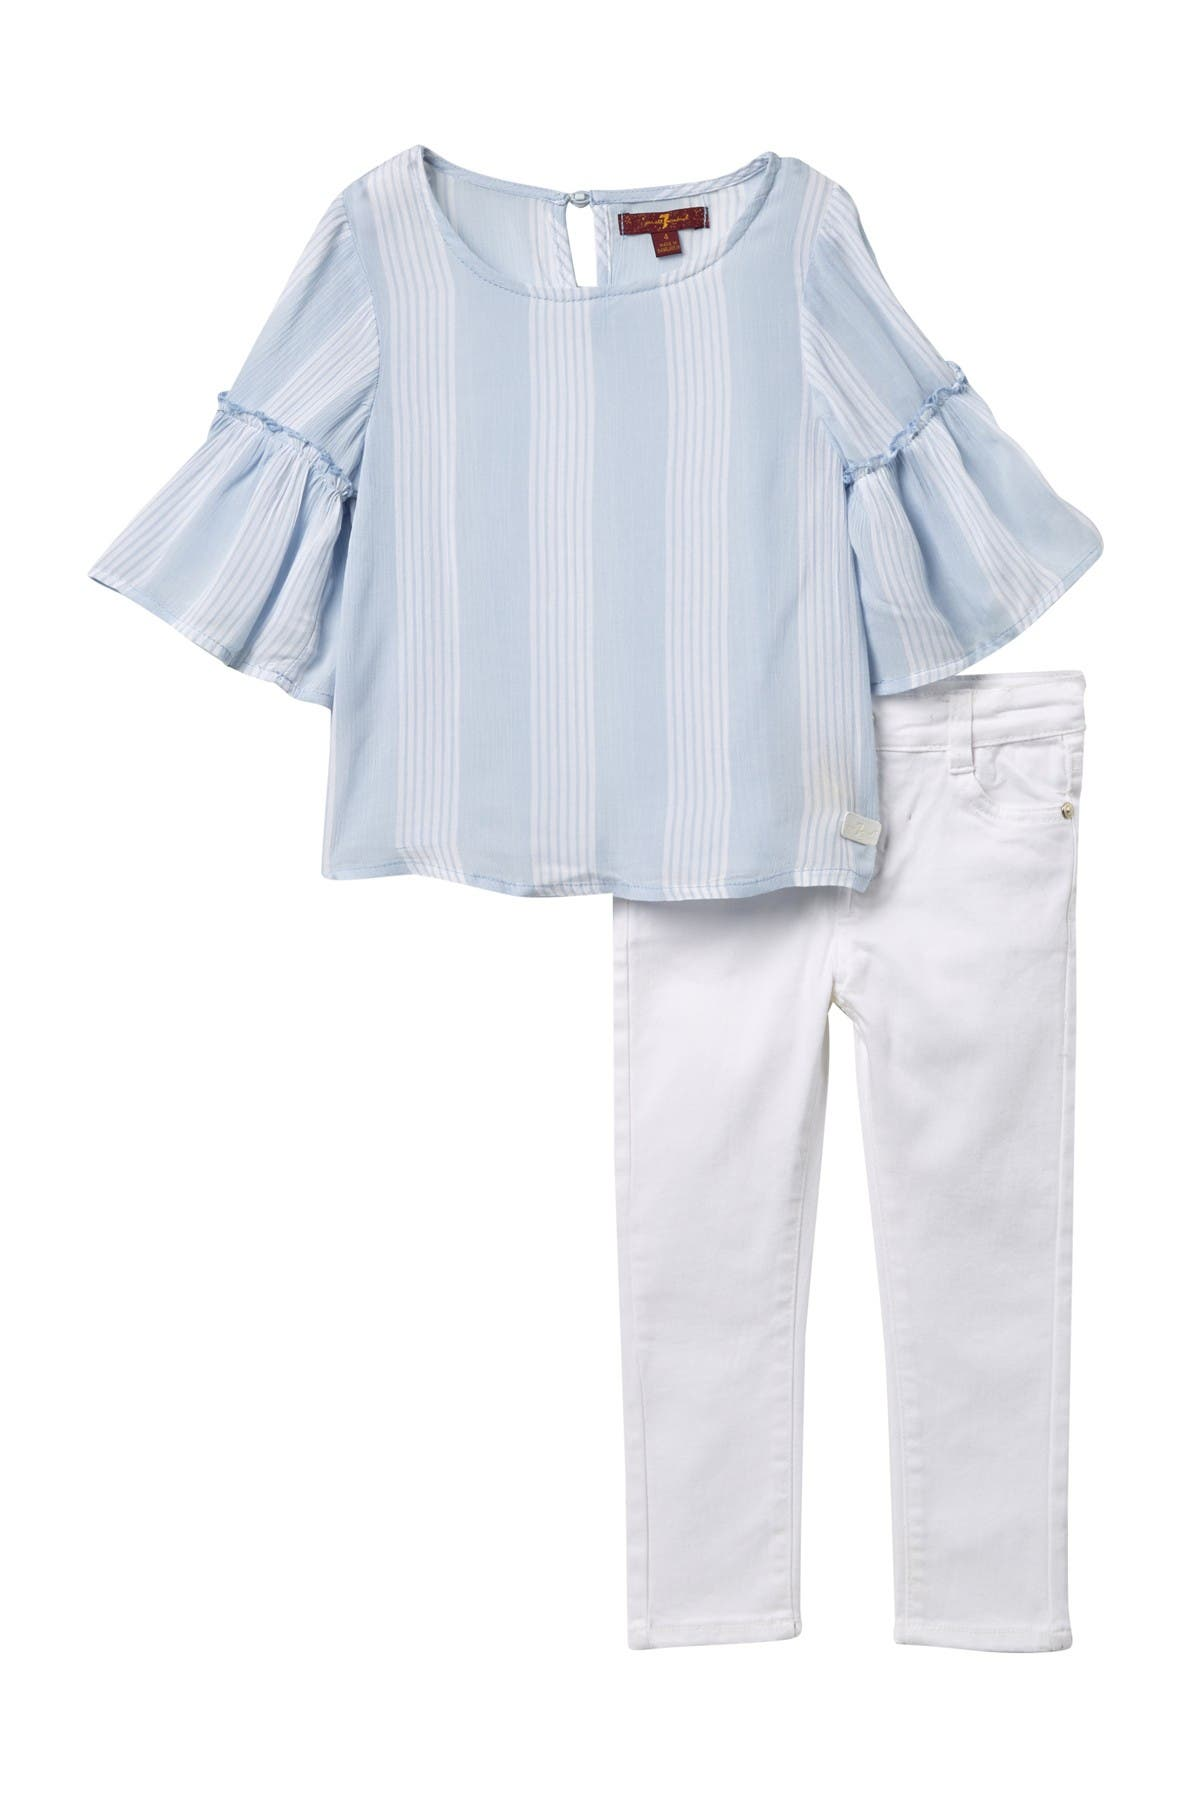 Image of 7 For All Mankind Bell Sleeve Top & Jeans Set